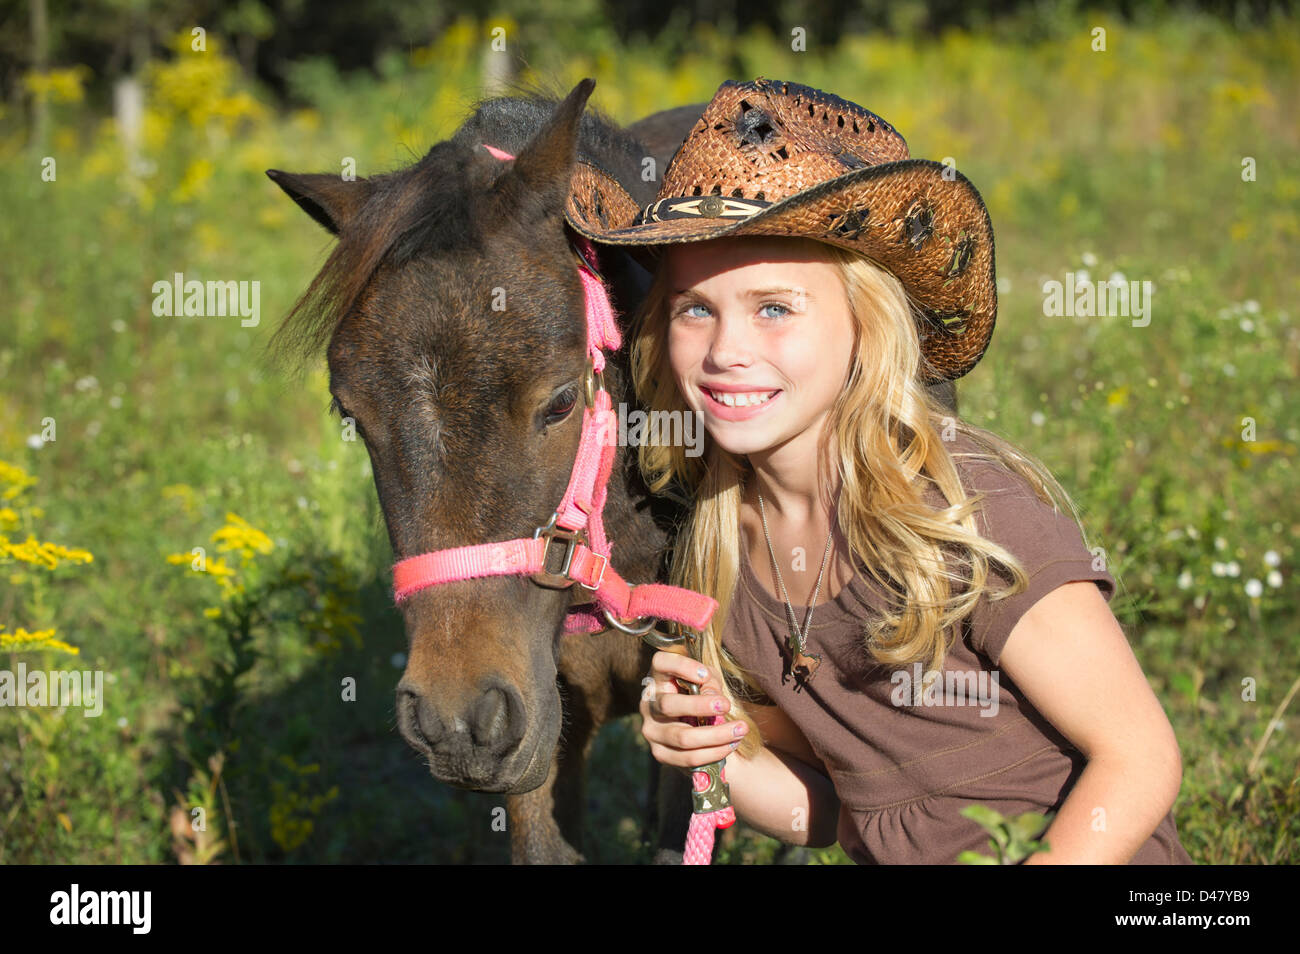 Miniature Horse And Child Stock Photos   Miniature Horse And Child ... 8b8dc69311f4